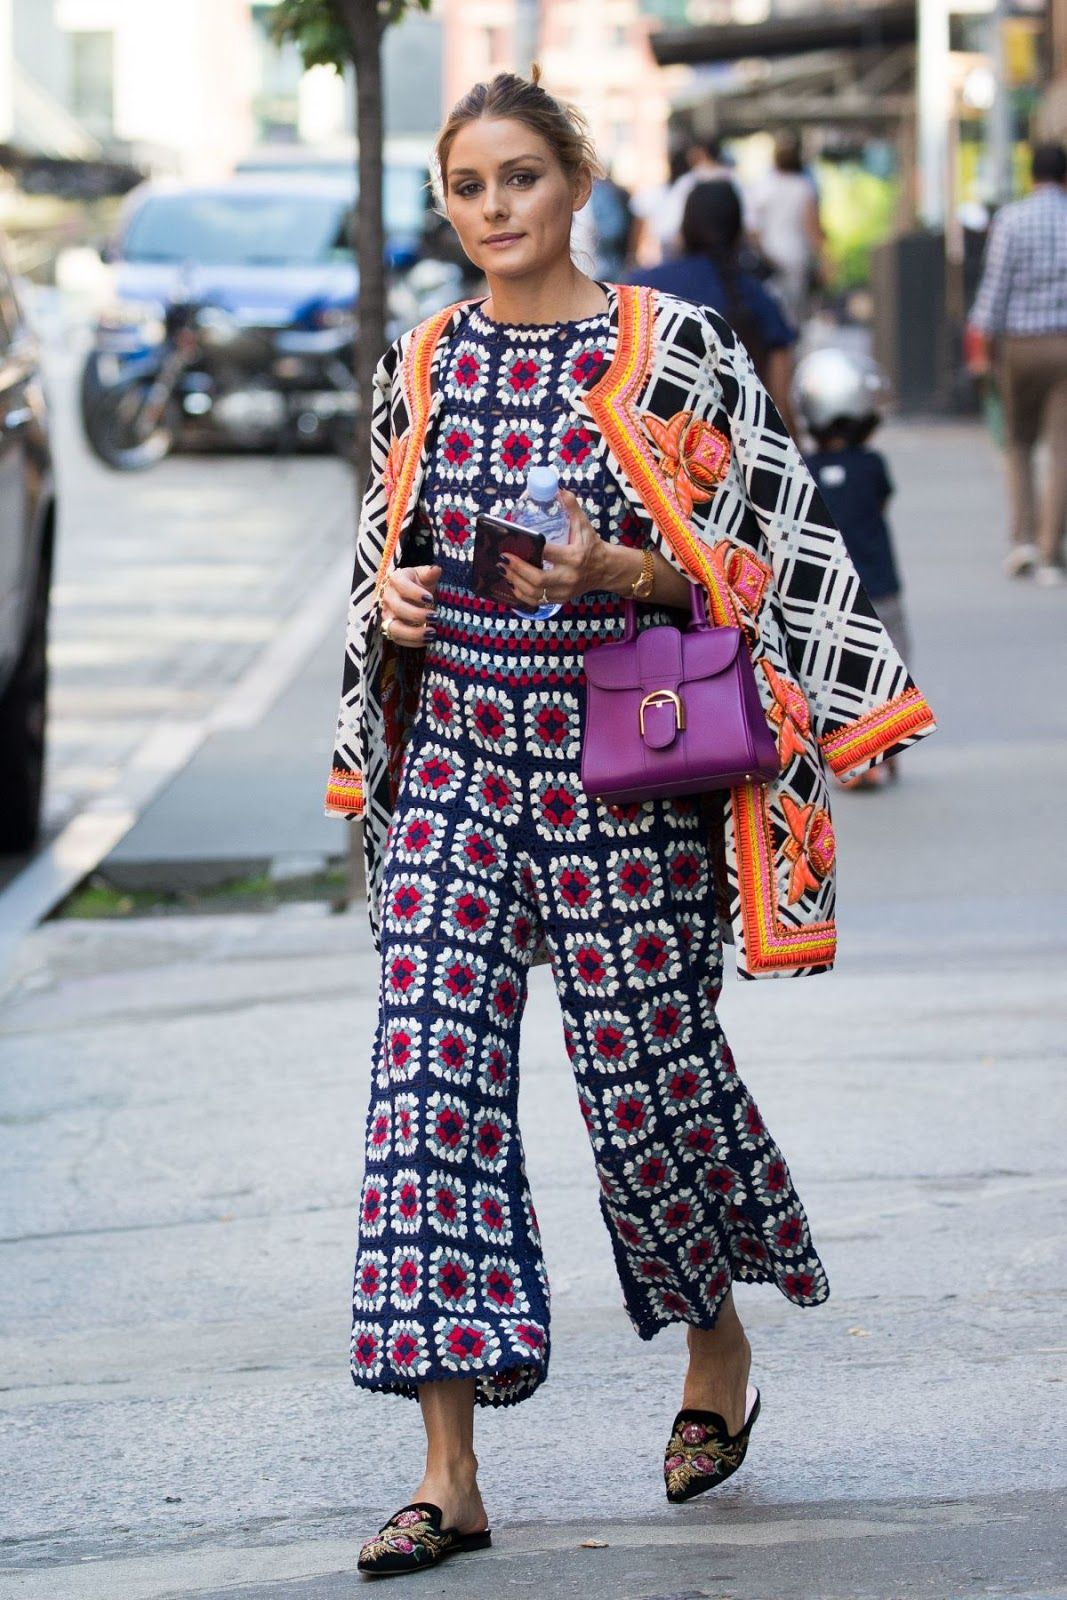 More of Olivia Palermo Stylish Starlets | Colorful fashion